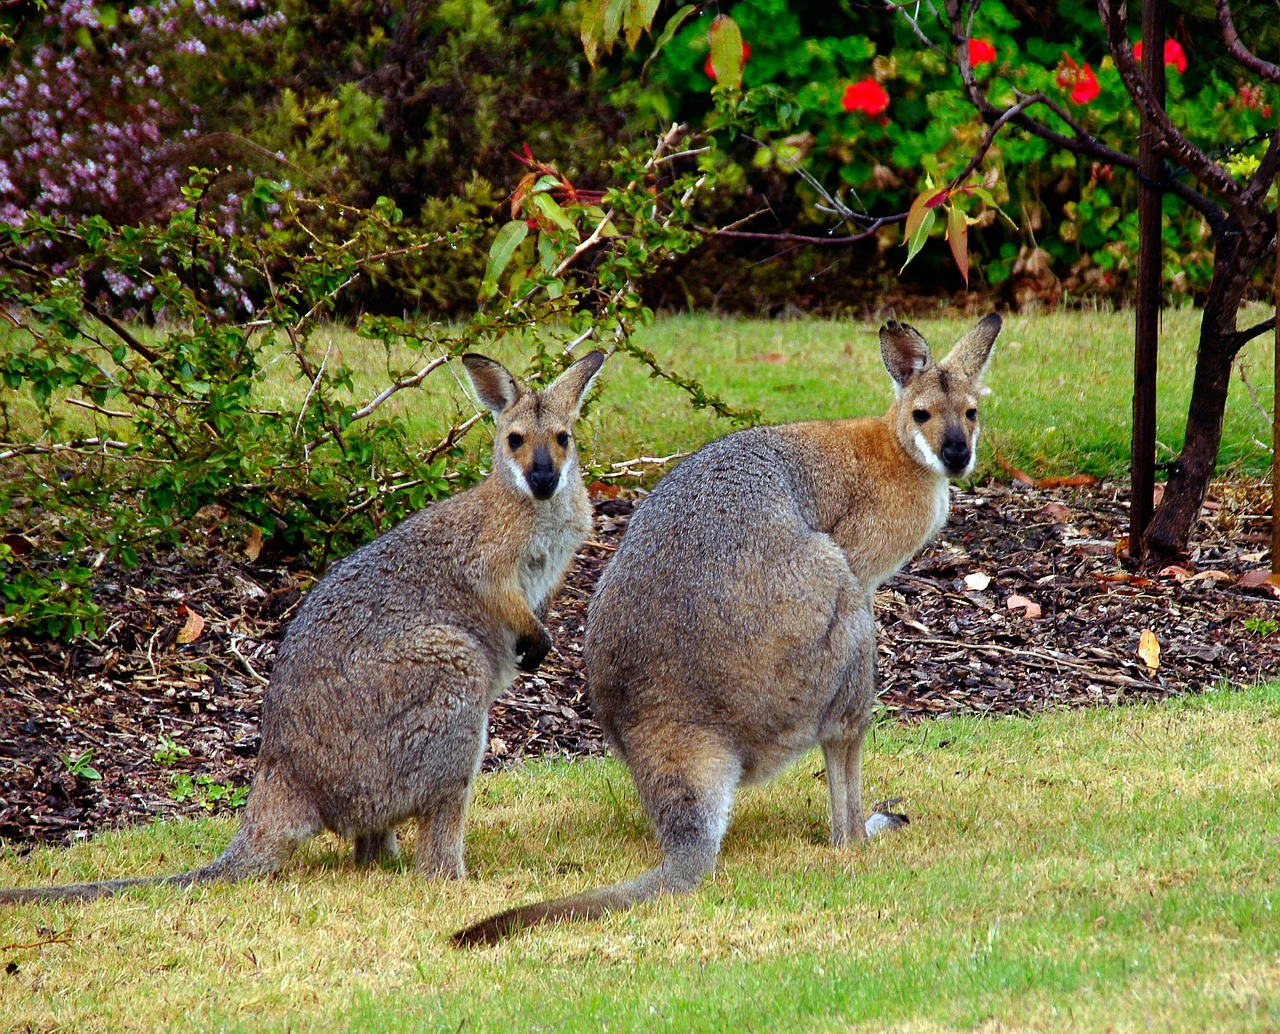 wallaby,marsupial,animal,australia,red-neck wallaby,queensland,garden,free pictures, free photos, free images, royalty free, free illustrations, public domain